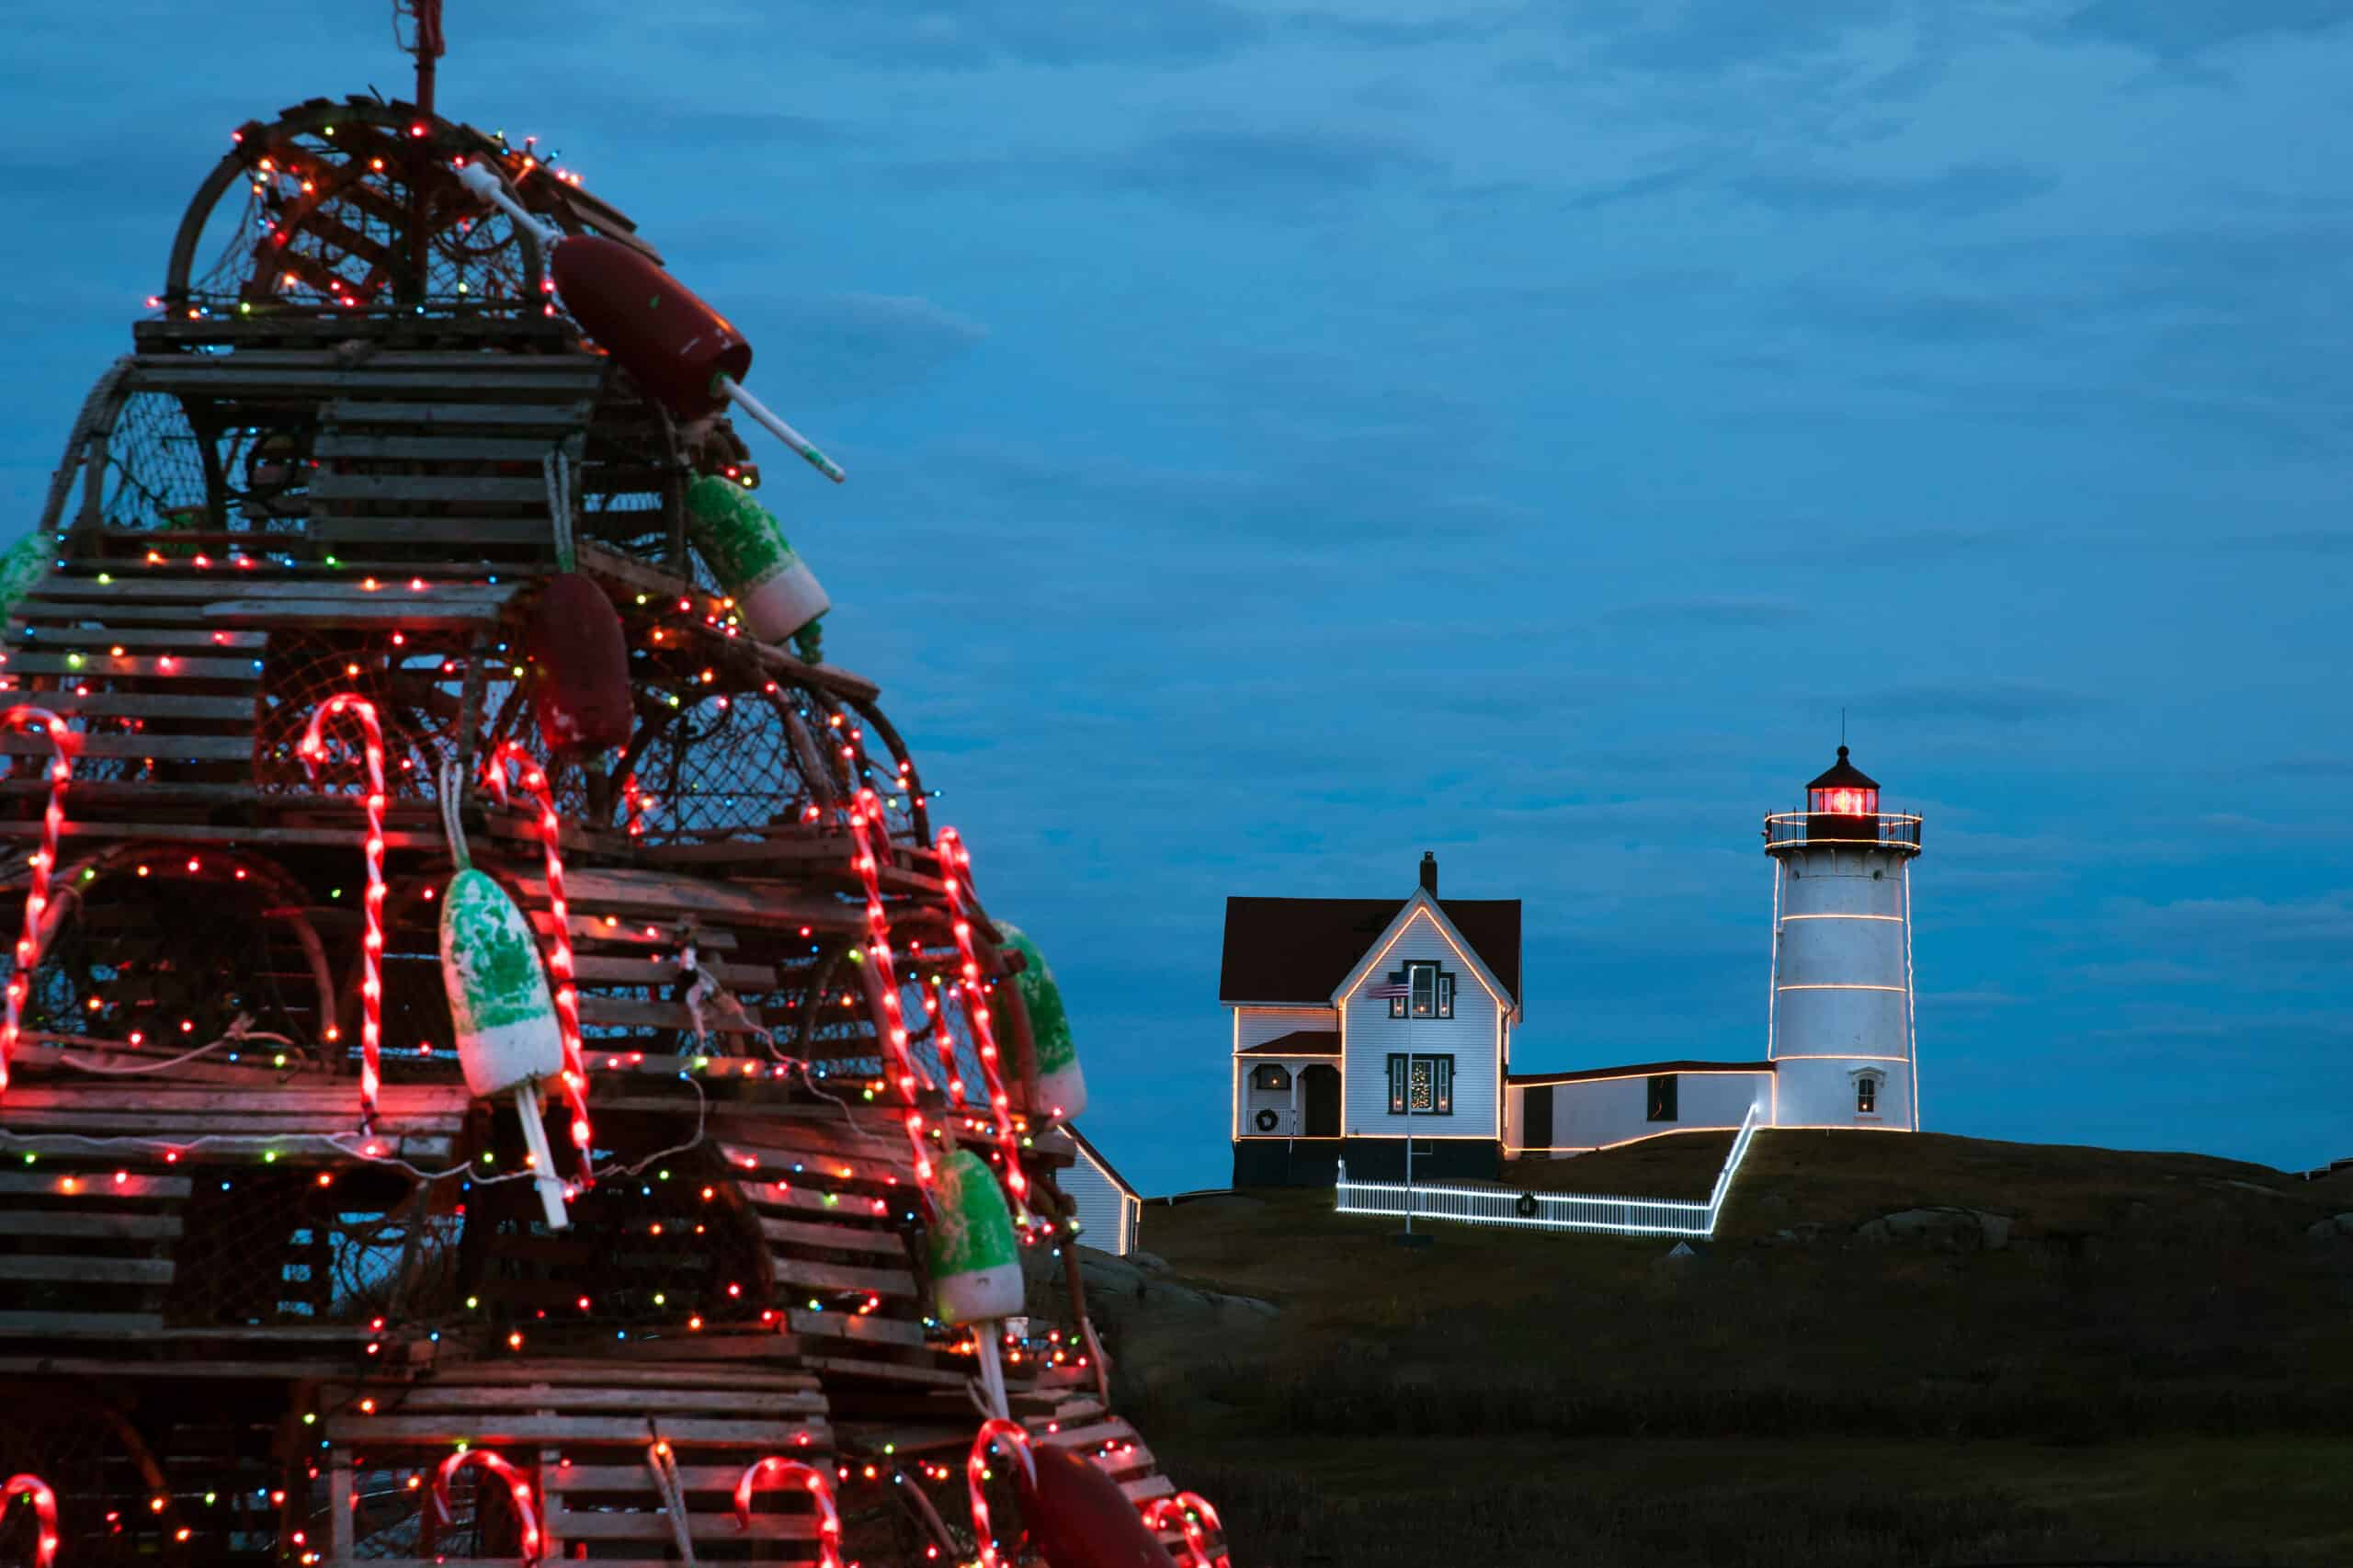 christmas in maine - Nubble lighthouse is decorated and lit up for the holidays in Maine with traditional wooden lobster trap holiday tree in the foreground.